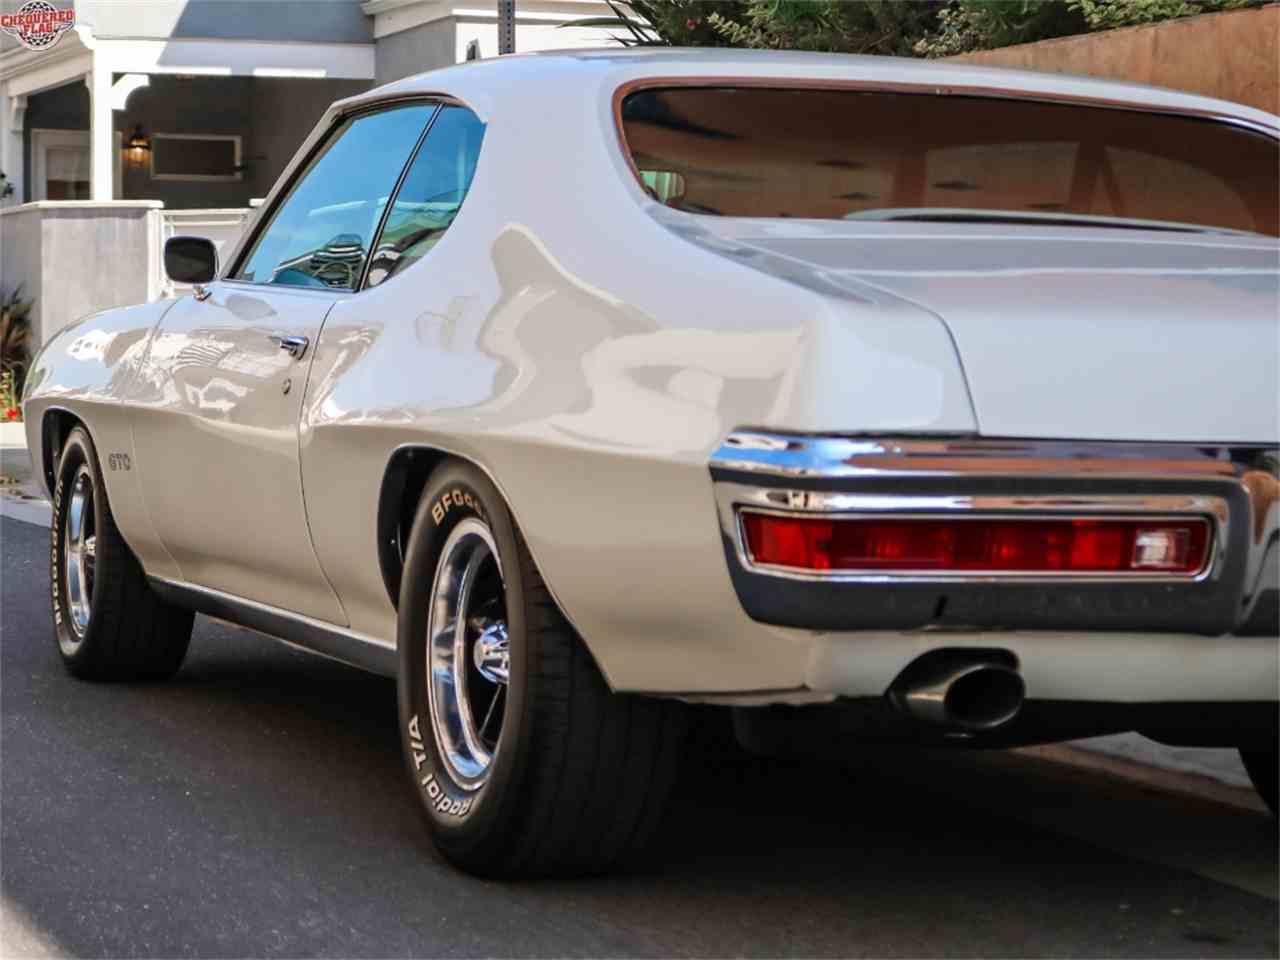 Large Picture of Classic '70 Pontiac GTO Offered by Chequered Flag International - LTS2